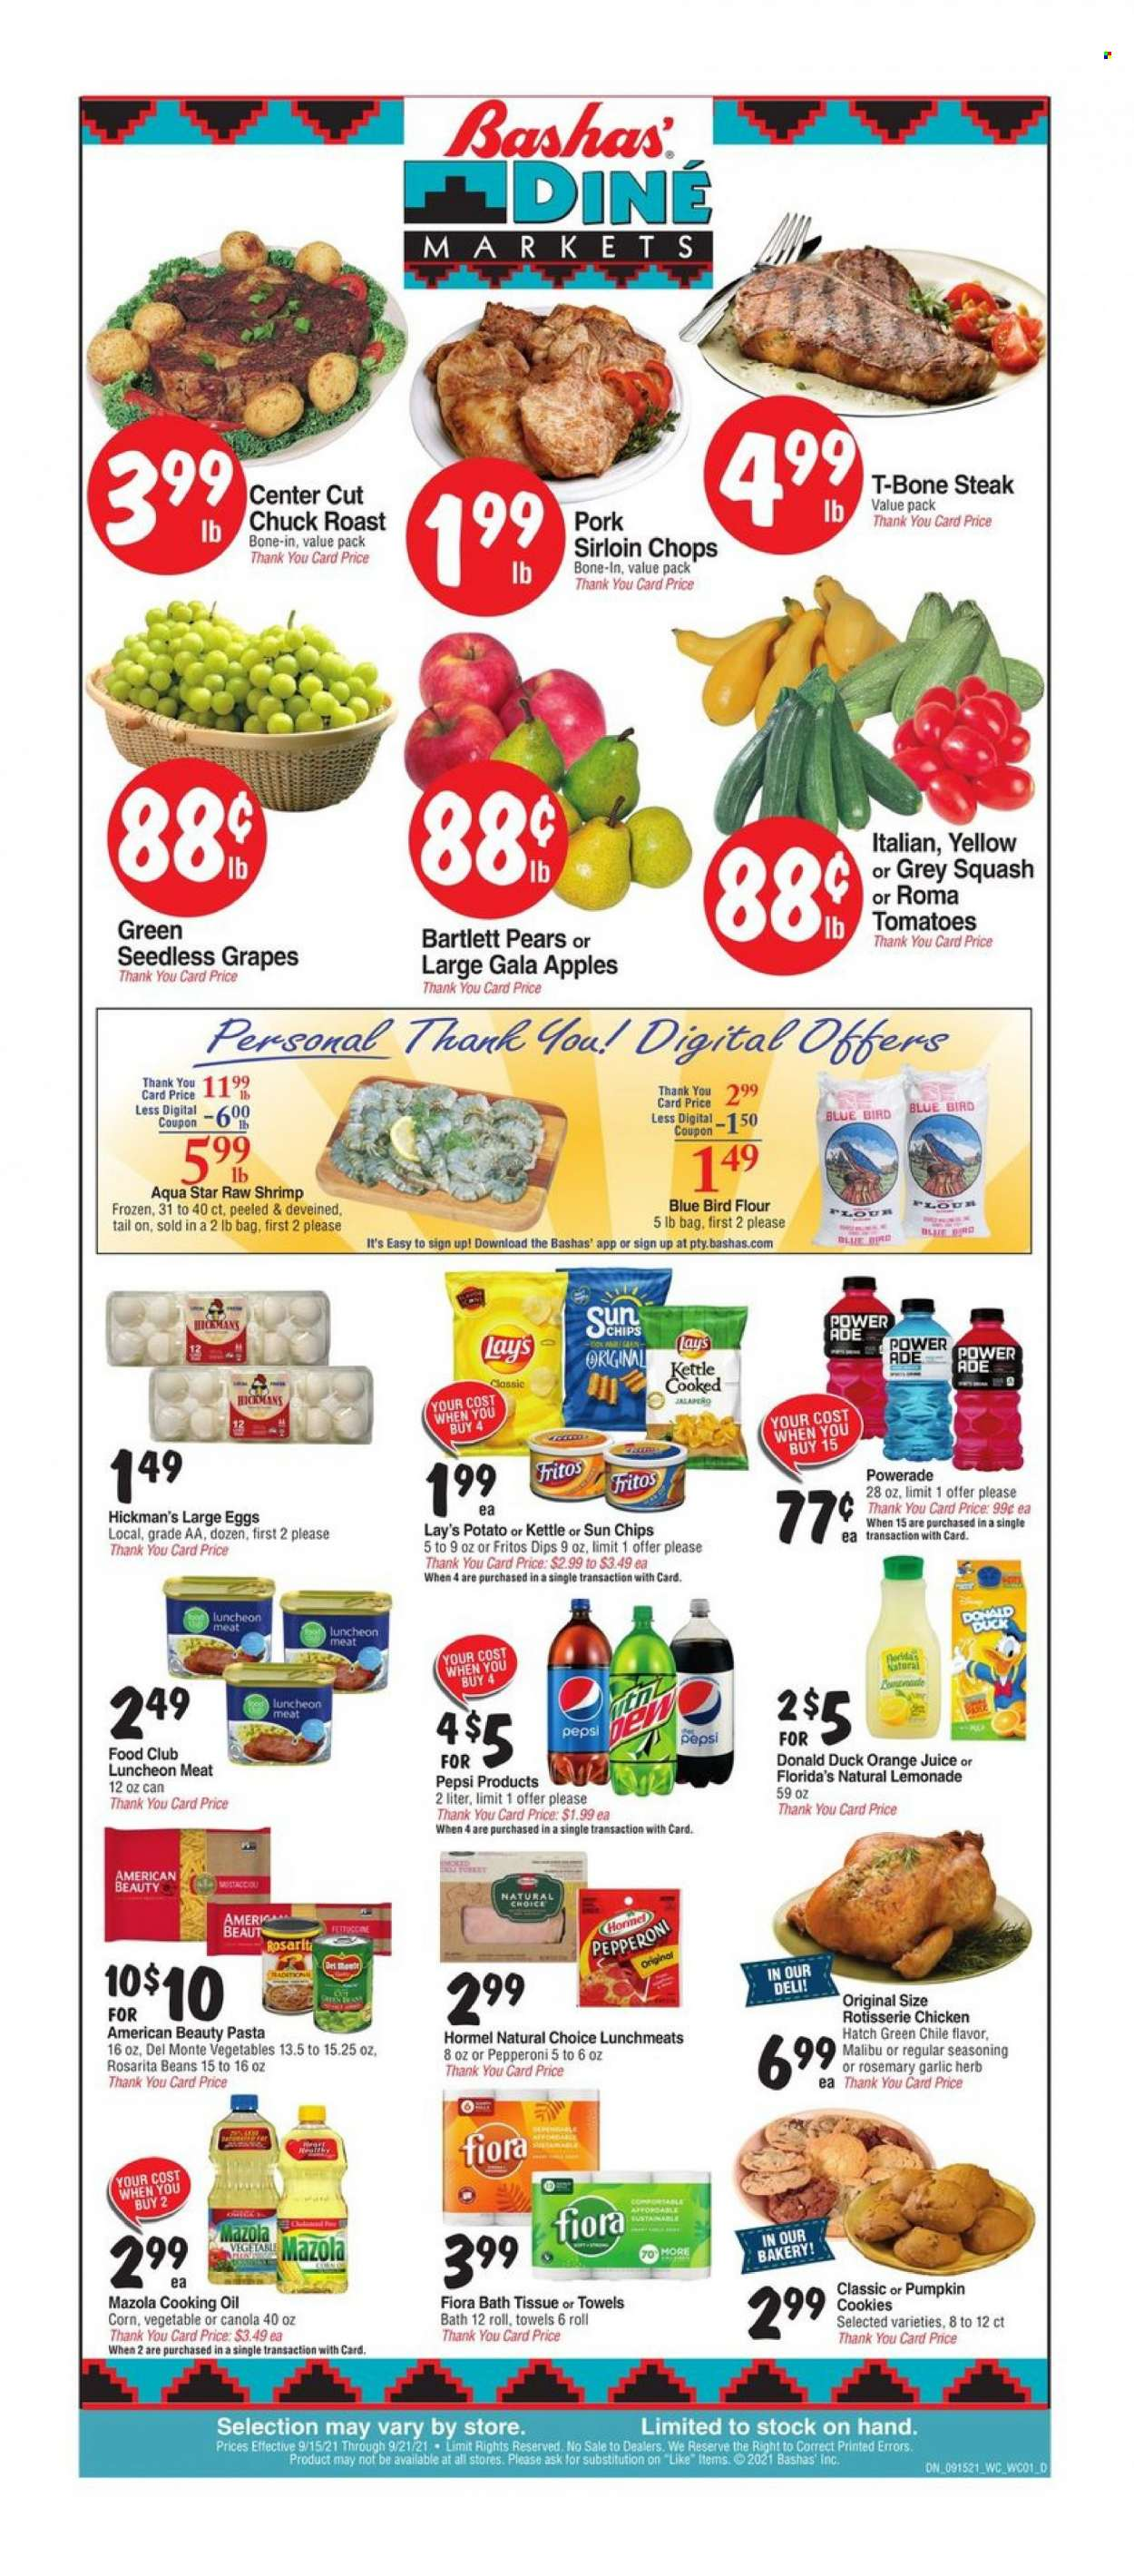 Bashas Diné Markets Ad from september 15 to 21 2021 - Page 1